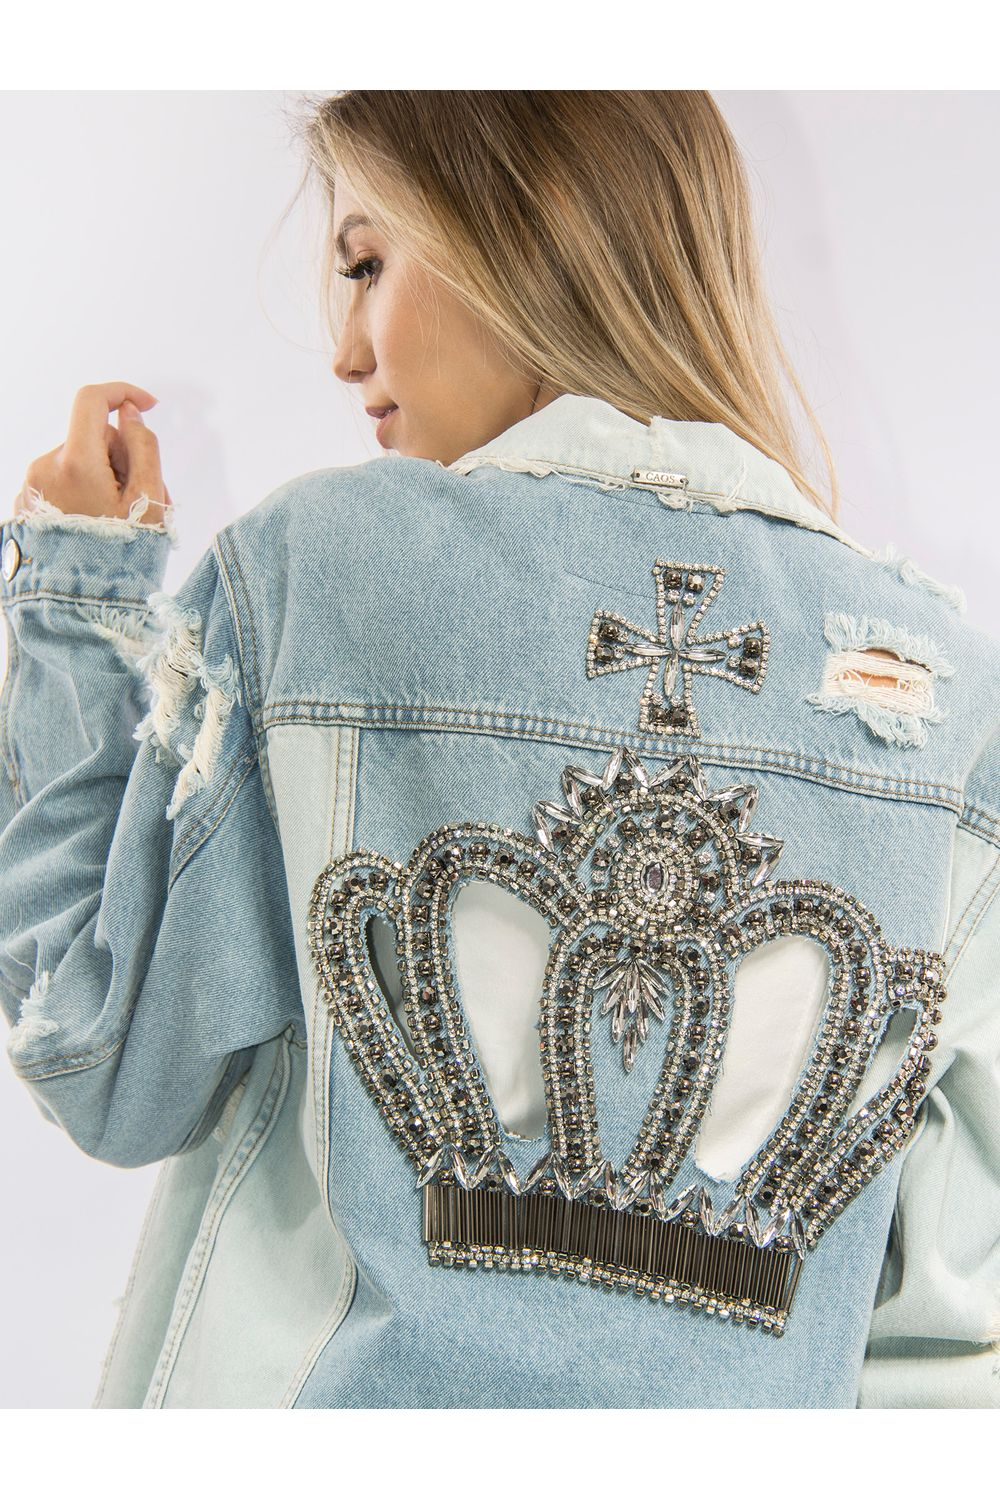 Personalized Your Denim Garments With These Ideas